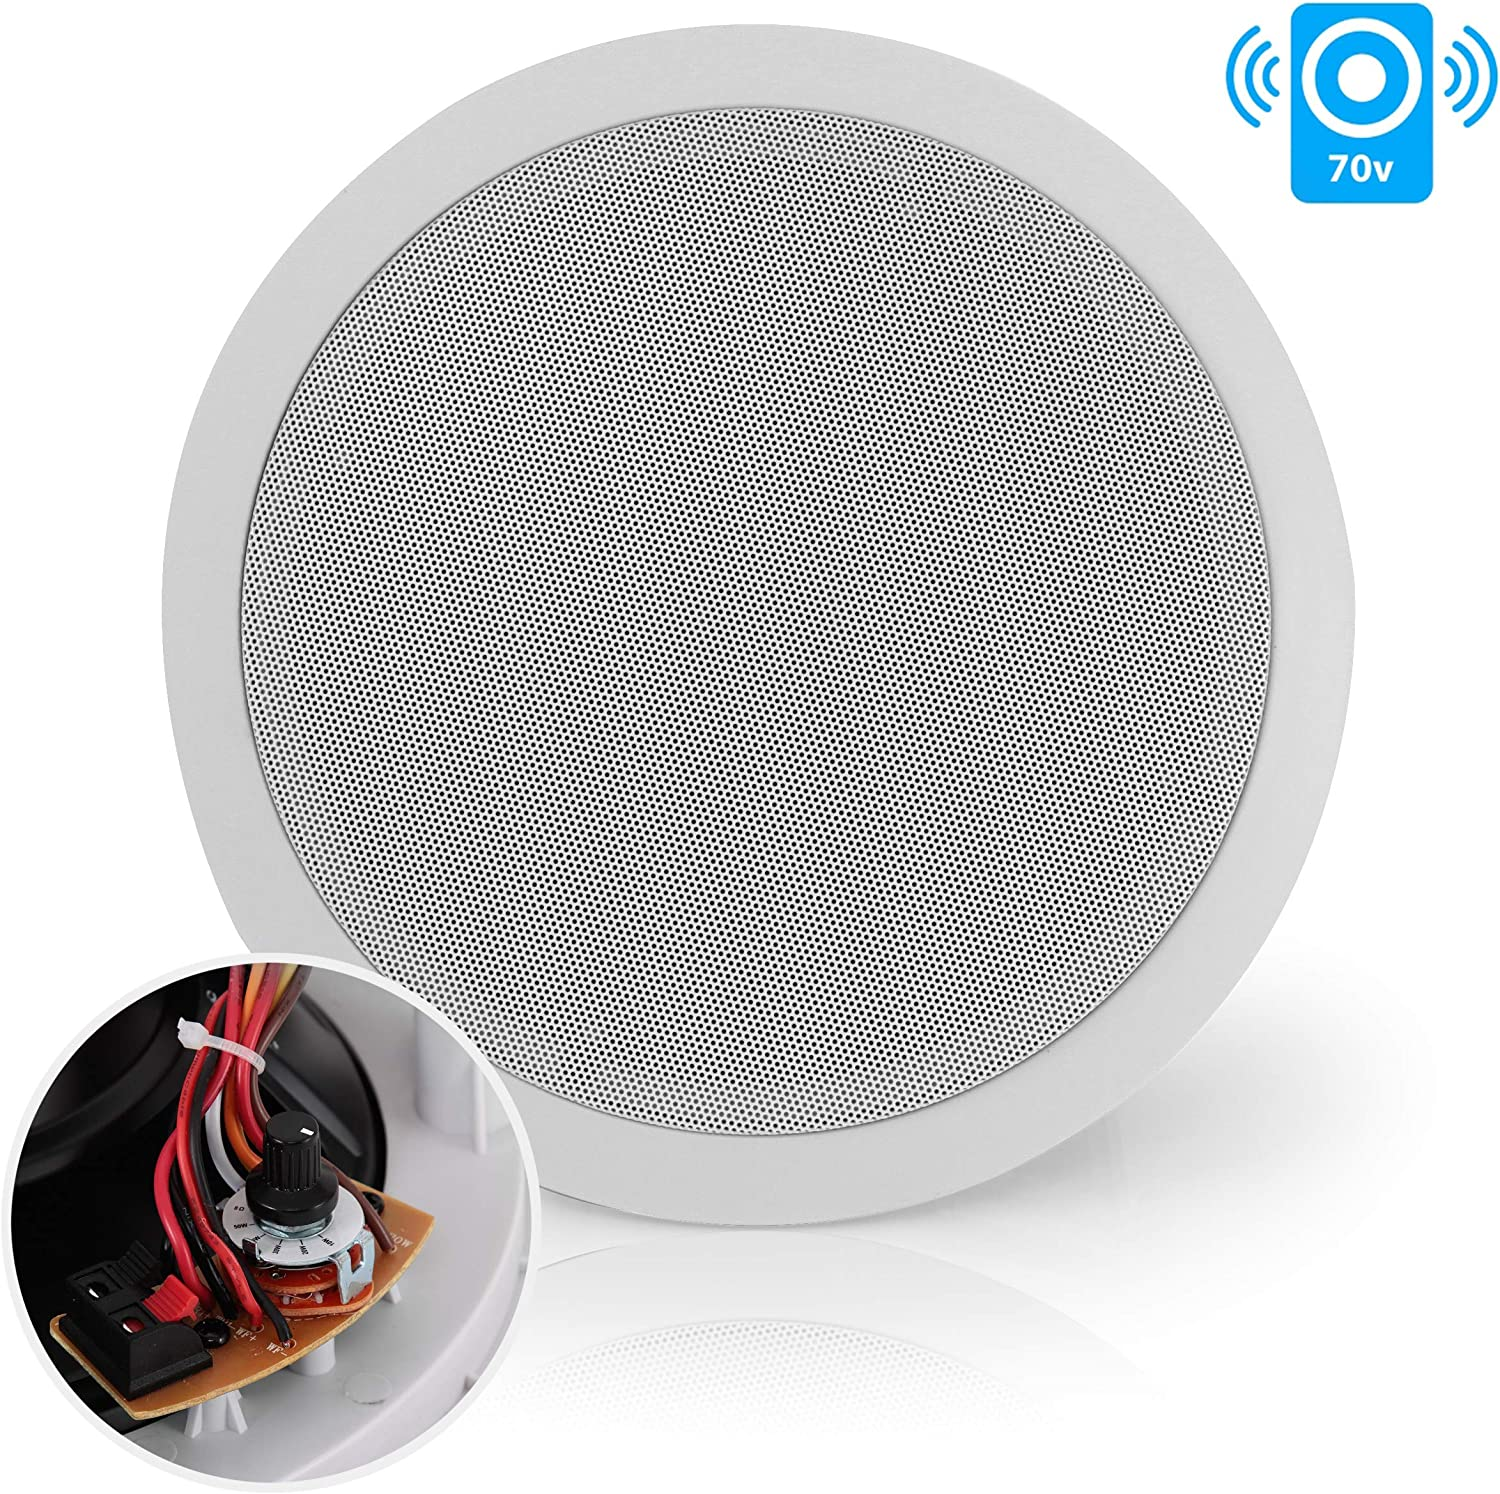 """Ceiling and Wall Mount Speaker - 8"""" 2-Way 70V Audio Stereo Sound Subwoofer Sound with Dome Tweeter, 600 Watts, in-Wall & in-Ceiling Flush Mount for Home Surround System - Pyle PDIC83T (White)"""